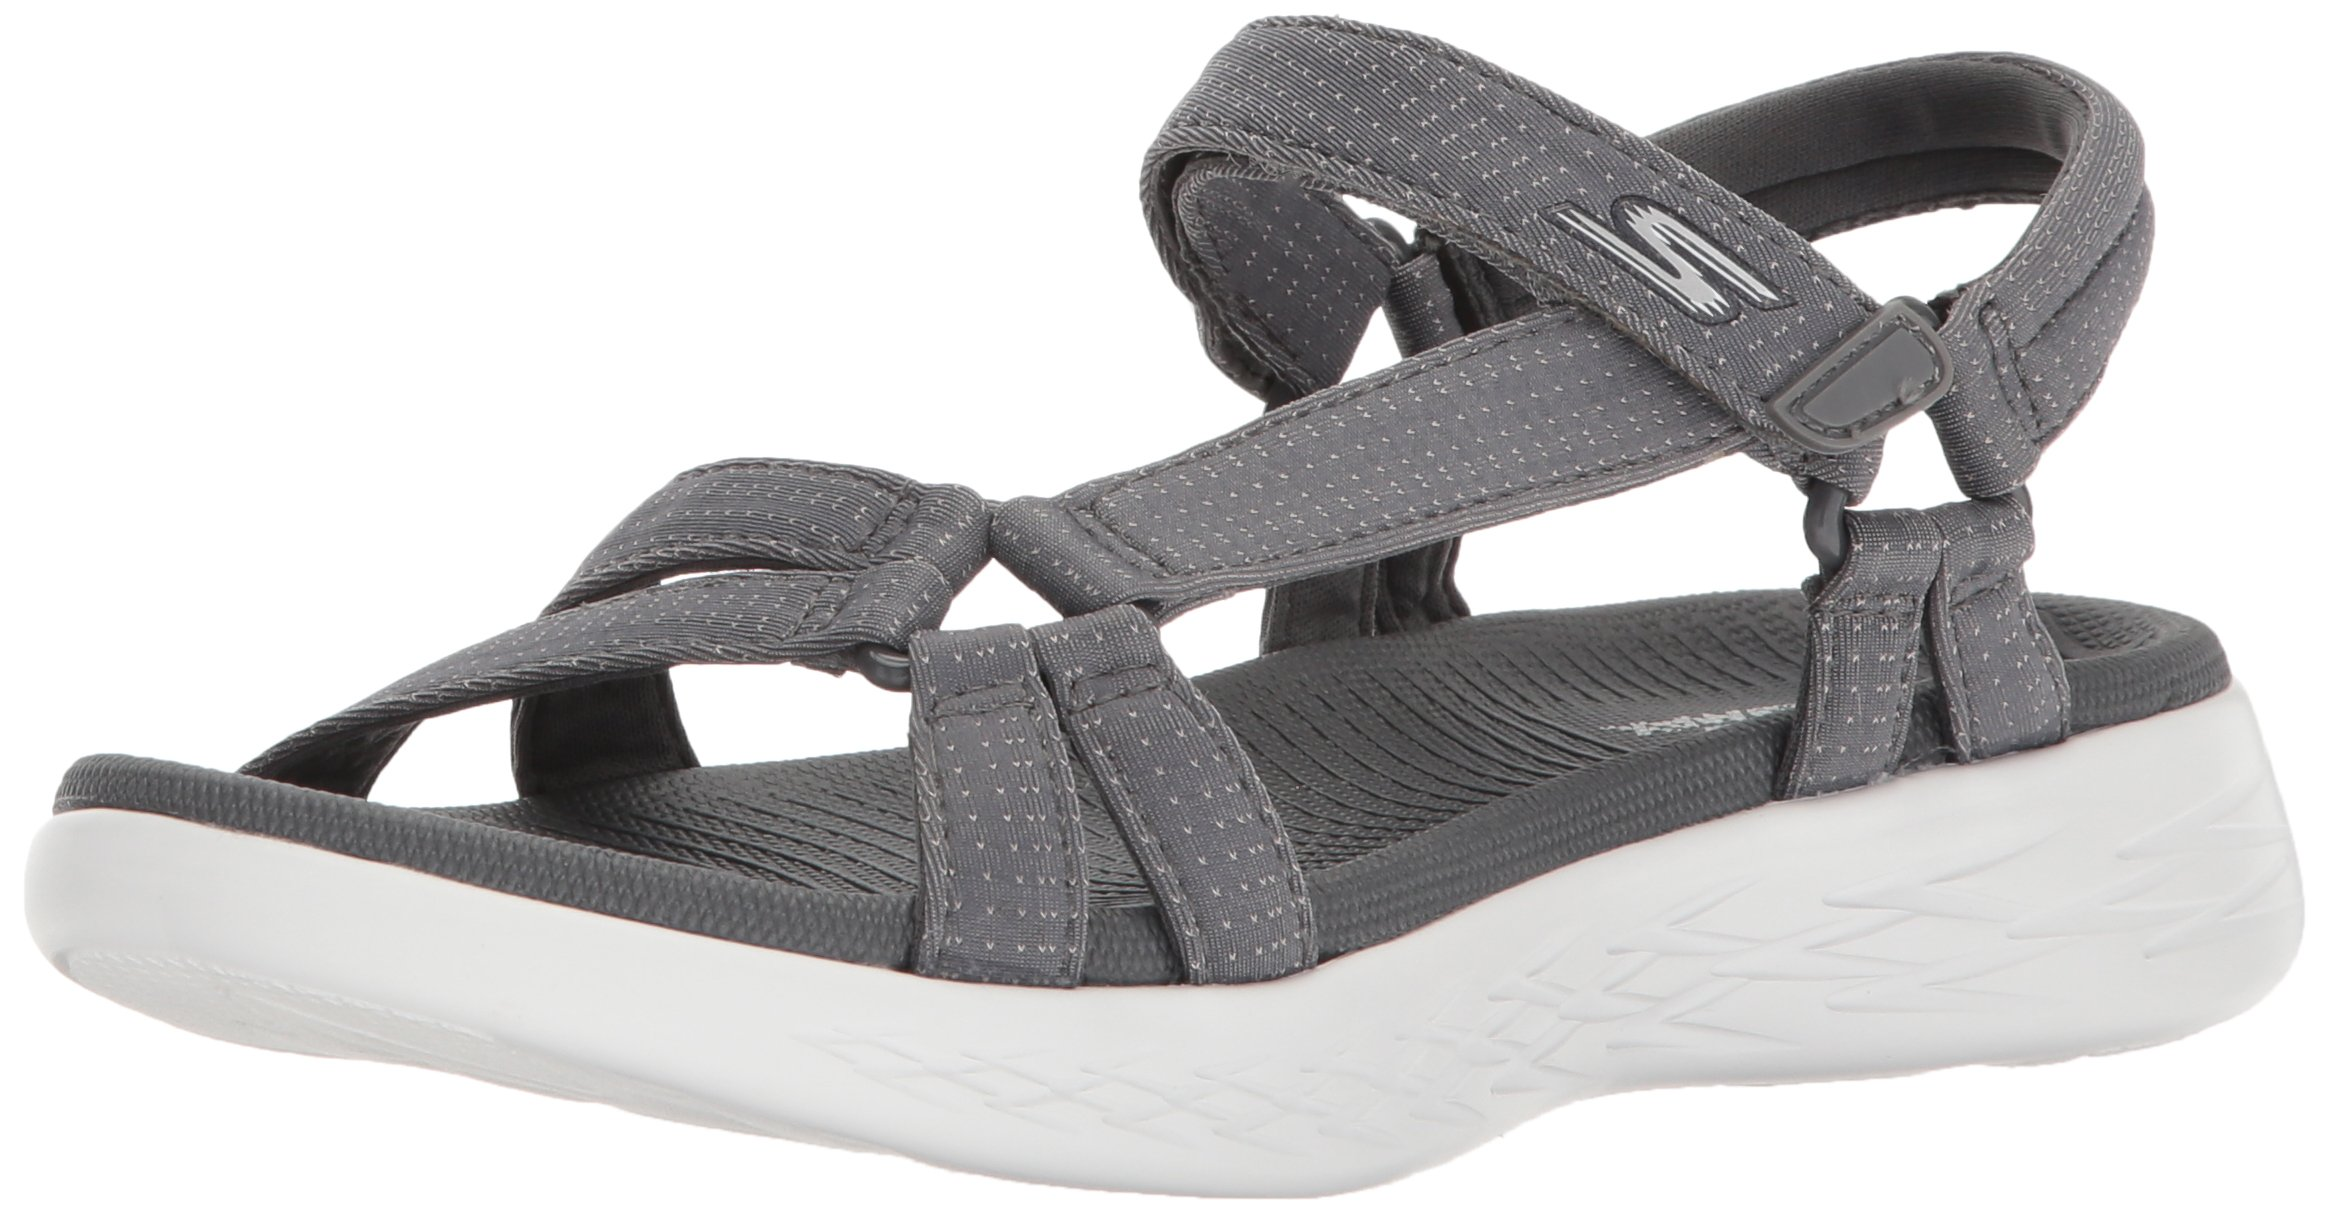 Skechers Performance Women's on-The-Go 600-Brilliancy Sport Sandal, Charcoal, 7 M US